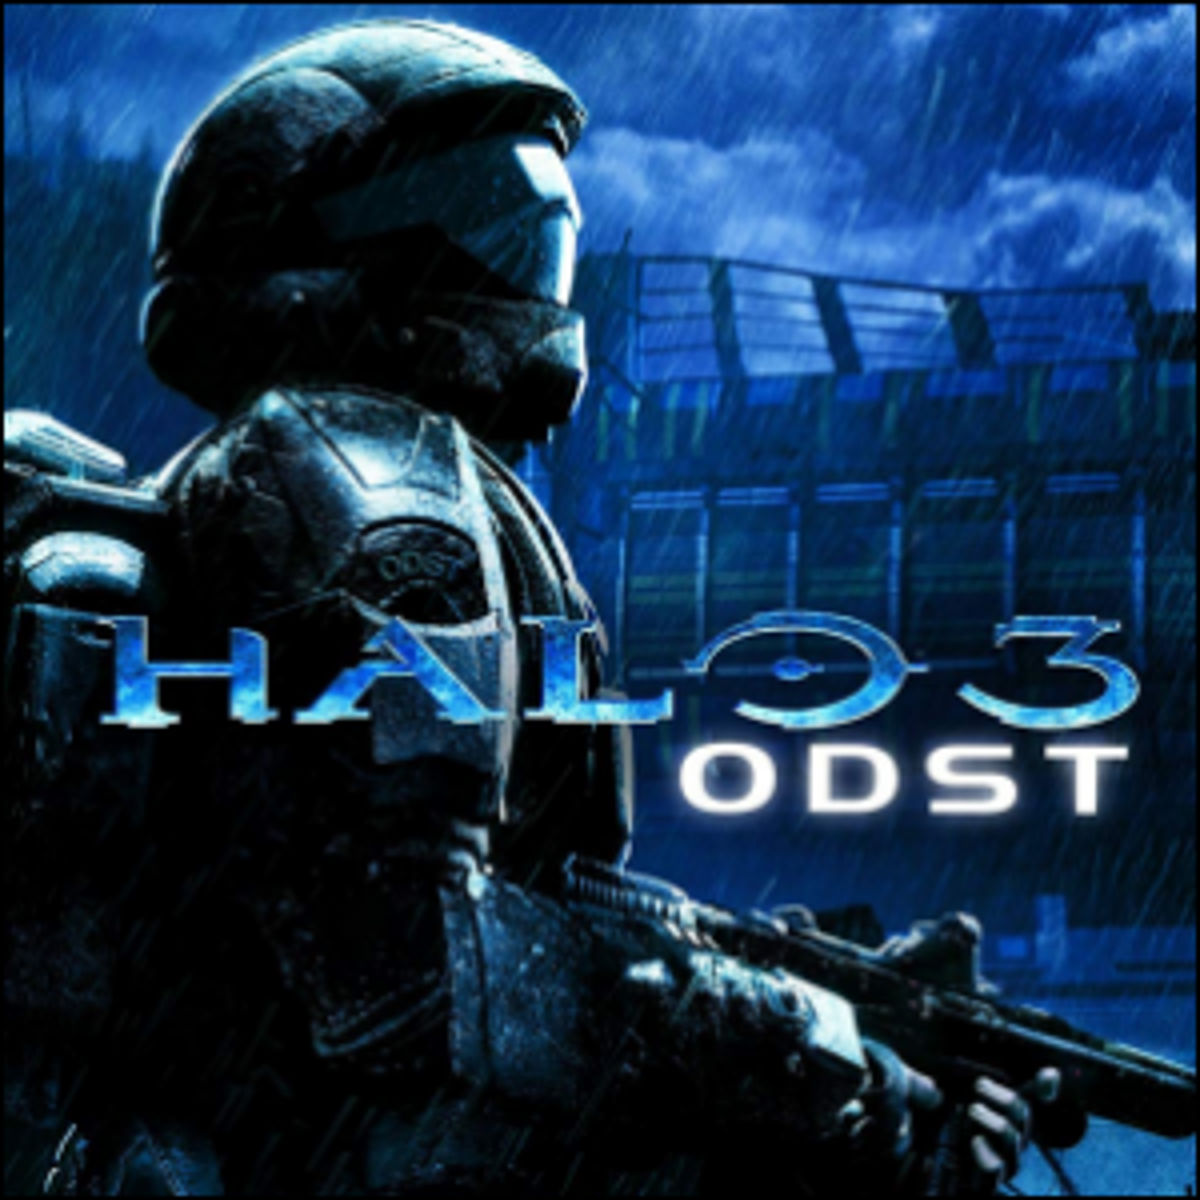 The cover art for Halo 3: ODST (Orbital Drop Shock Troopers).